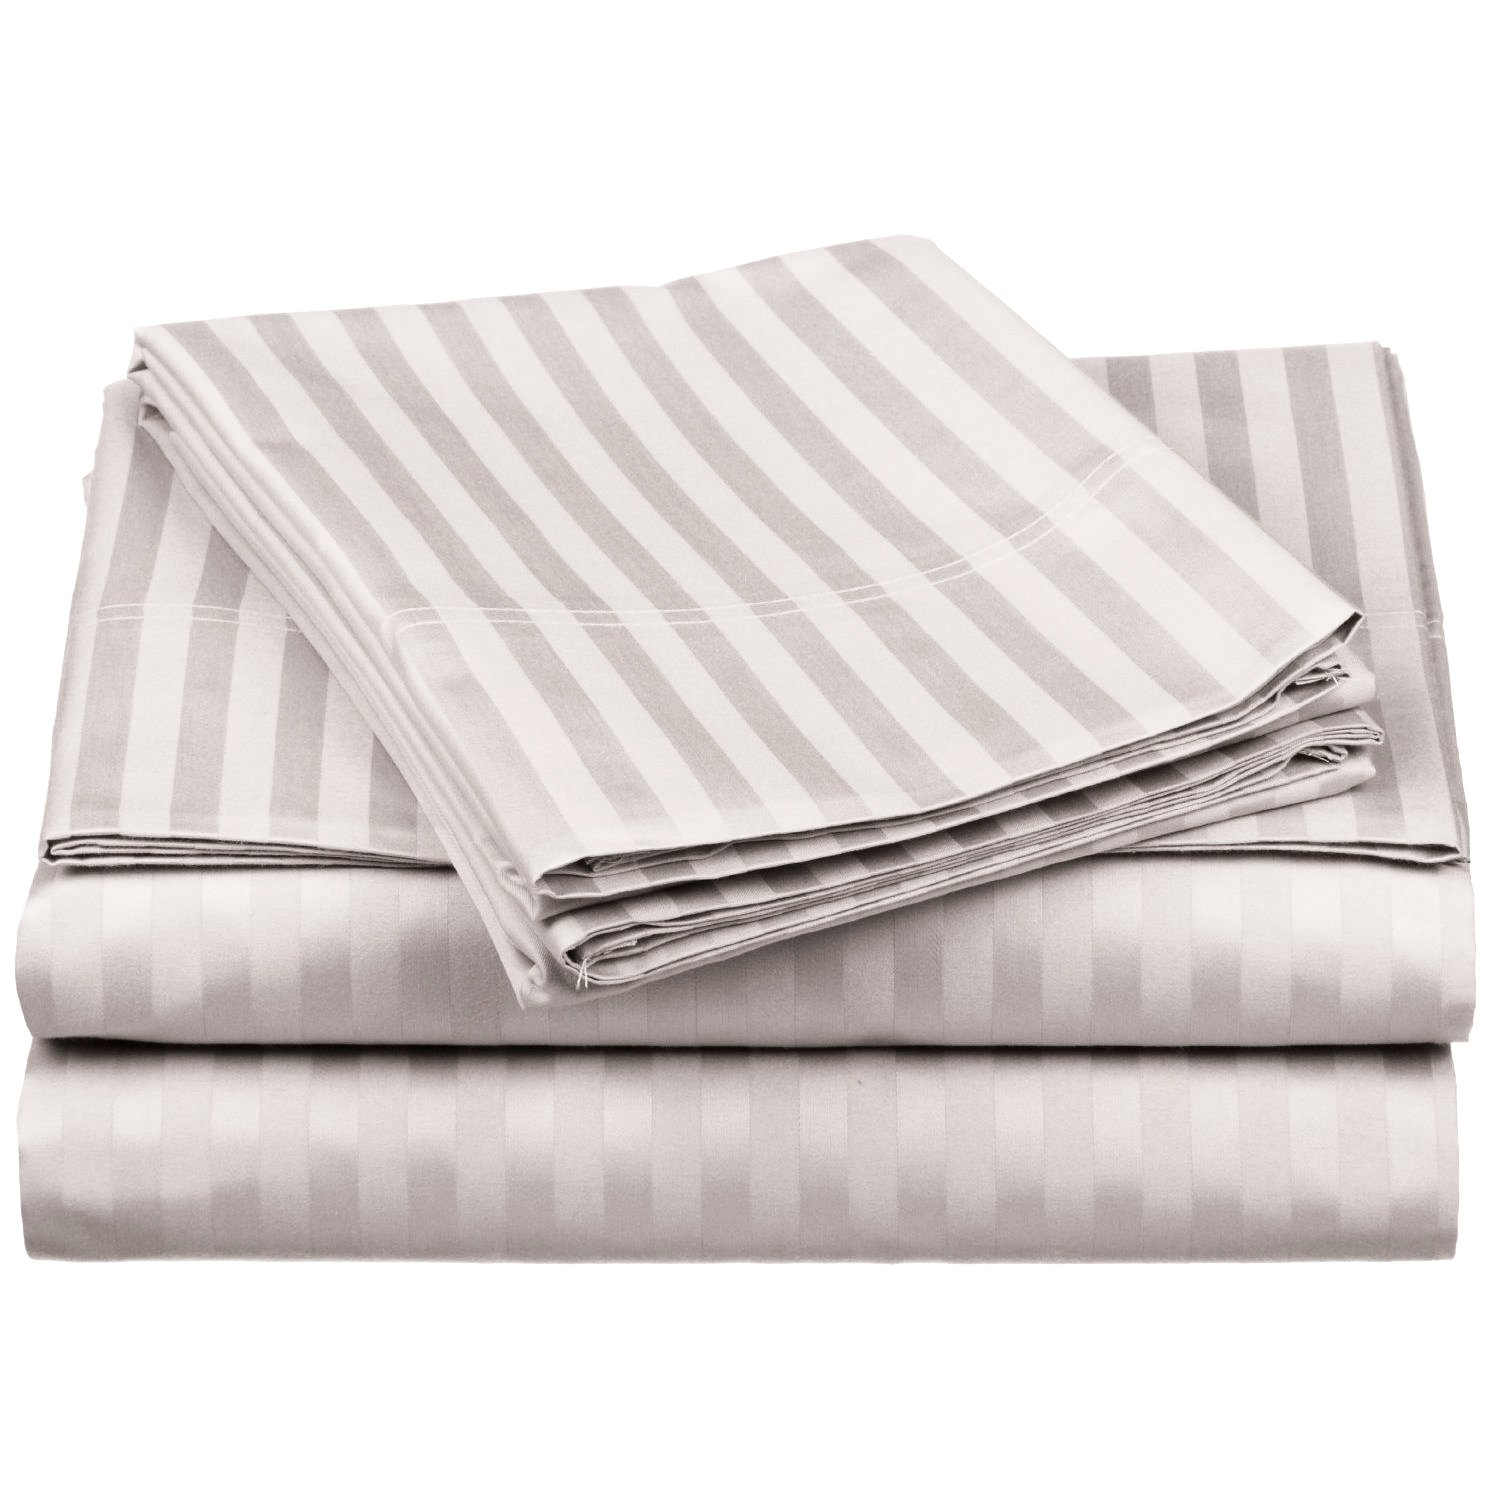 100% Egyptian Cotton 650 Thread Count King 4-Piece Sheet Set, Deep Pocket, Single Ply, Stripe, Silver